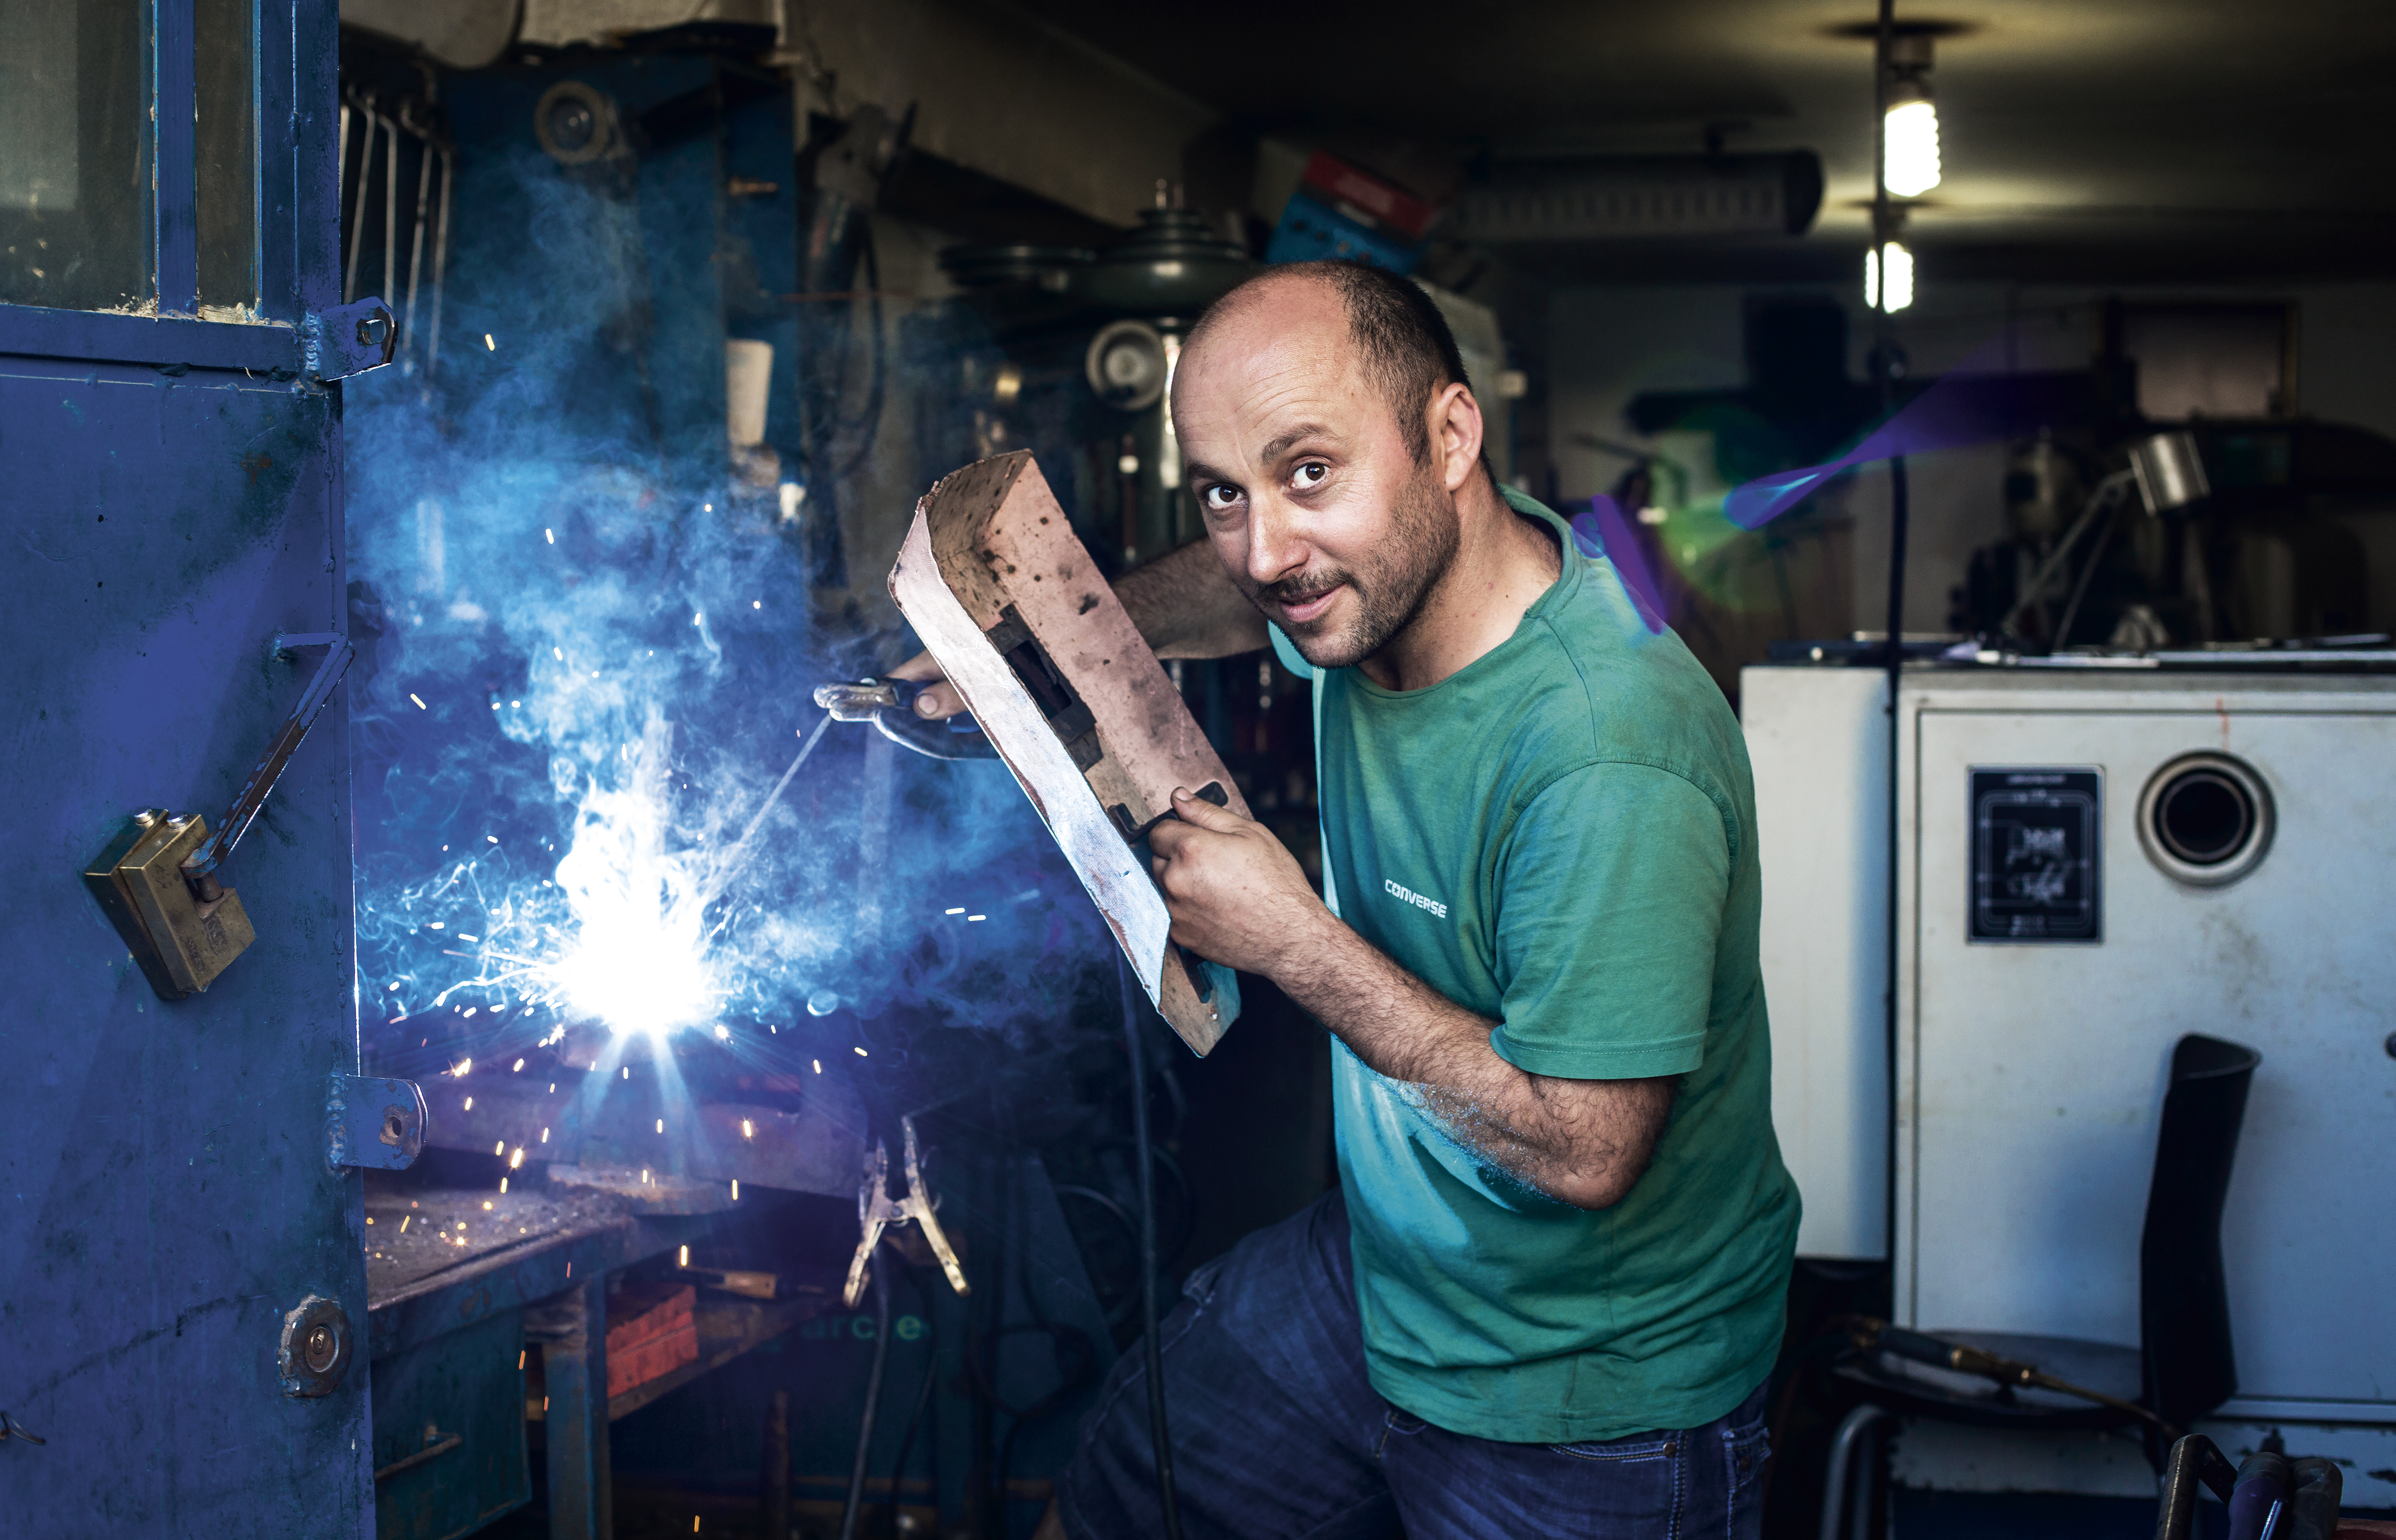 A welder doing his work, in an industrial place, a factory.